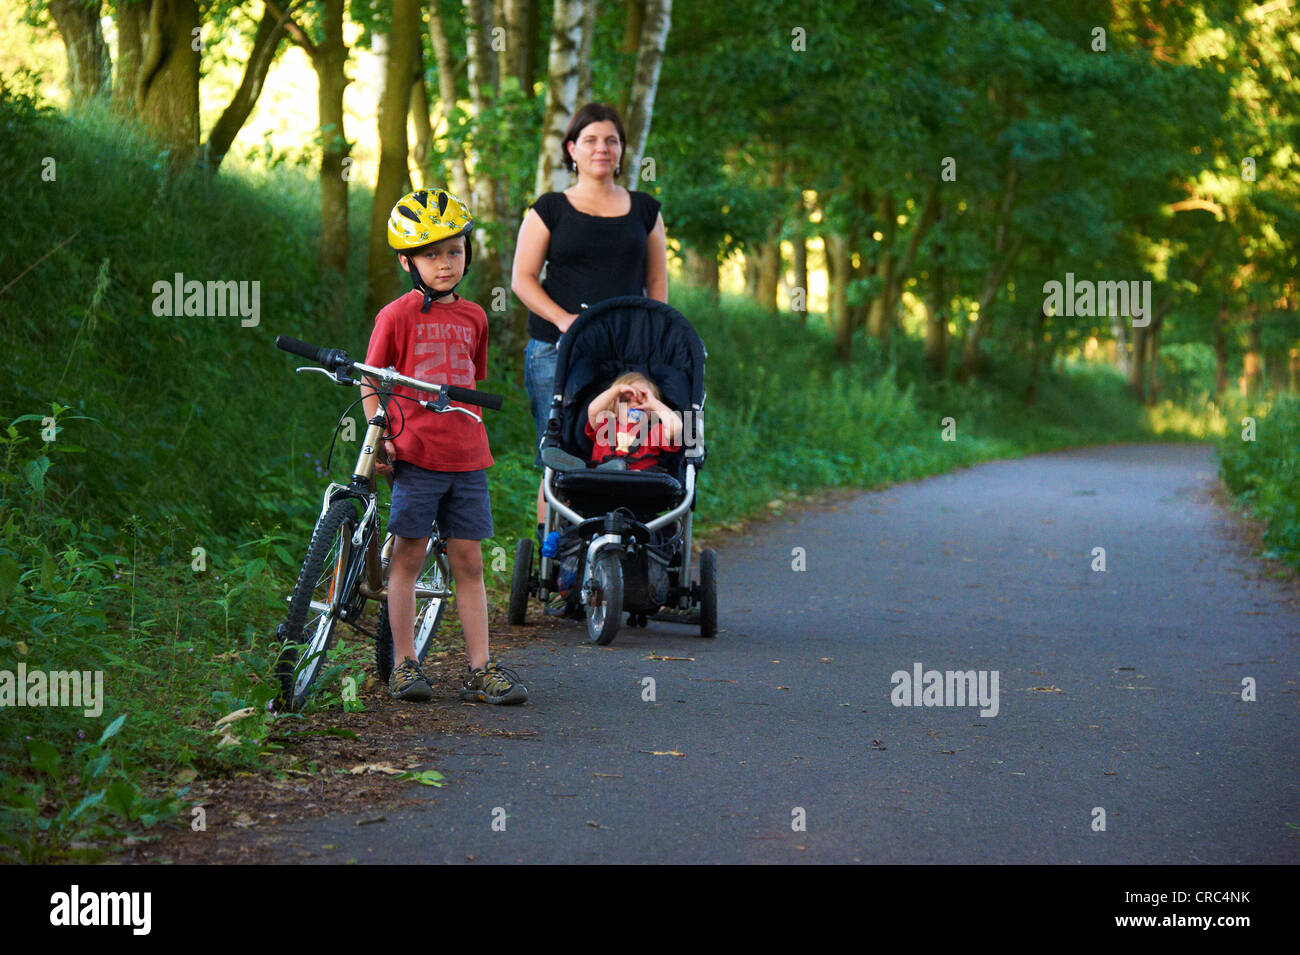 Child blond boy 6 - 7 years old riding bicycle with safety helmet in